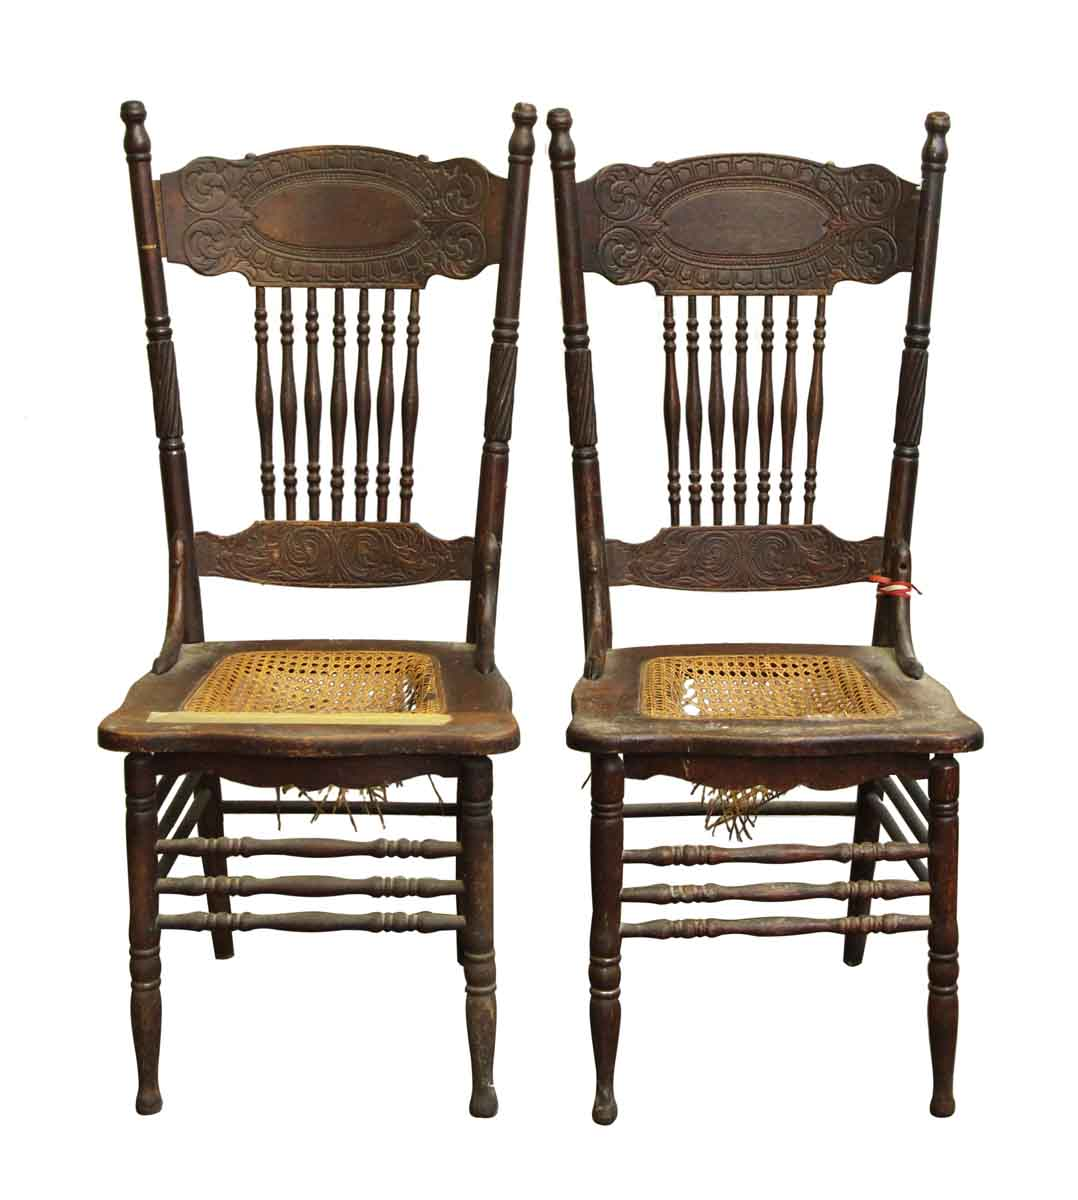 Vintage Wooden Kitchen Chairs: Pair Of Vintage Wooden Chairs